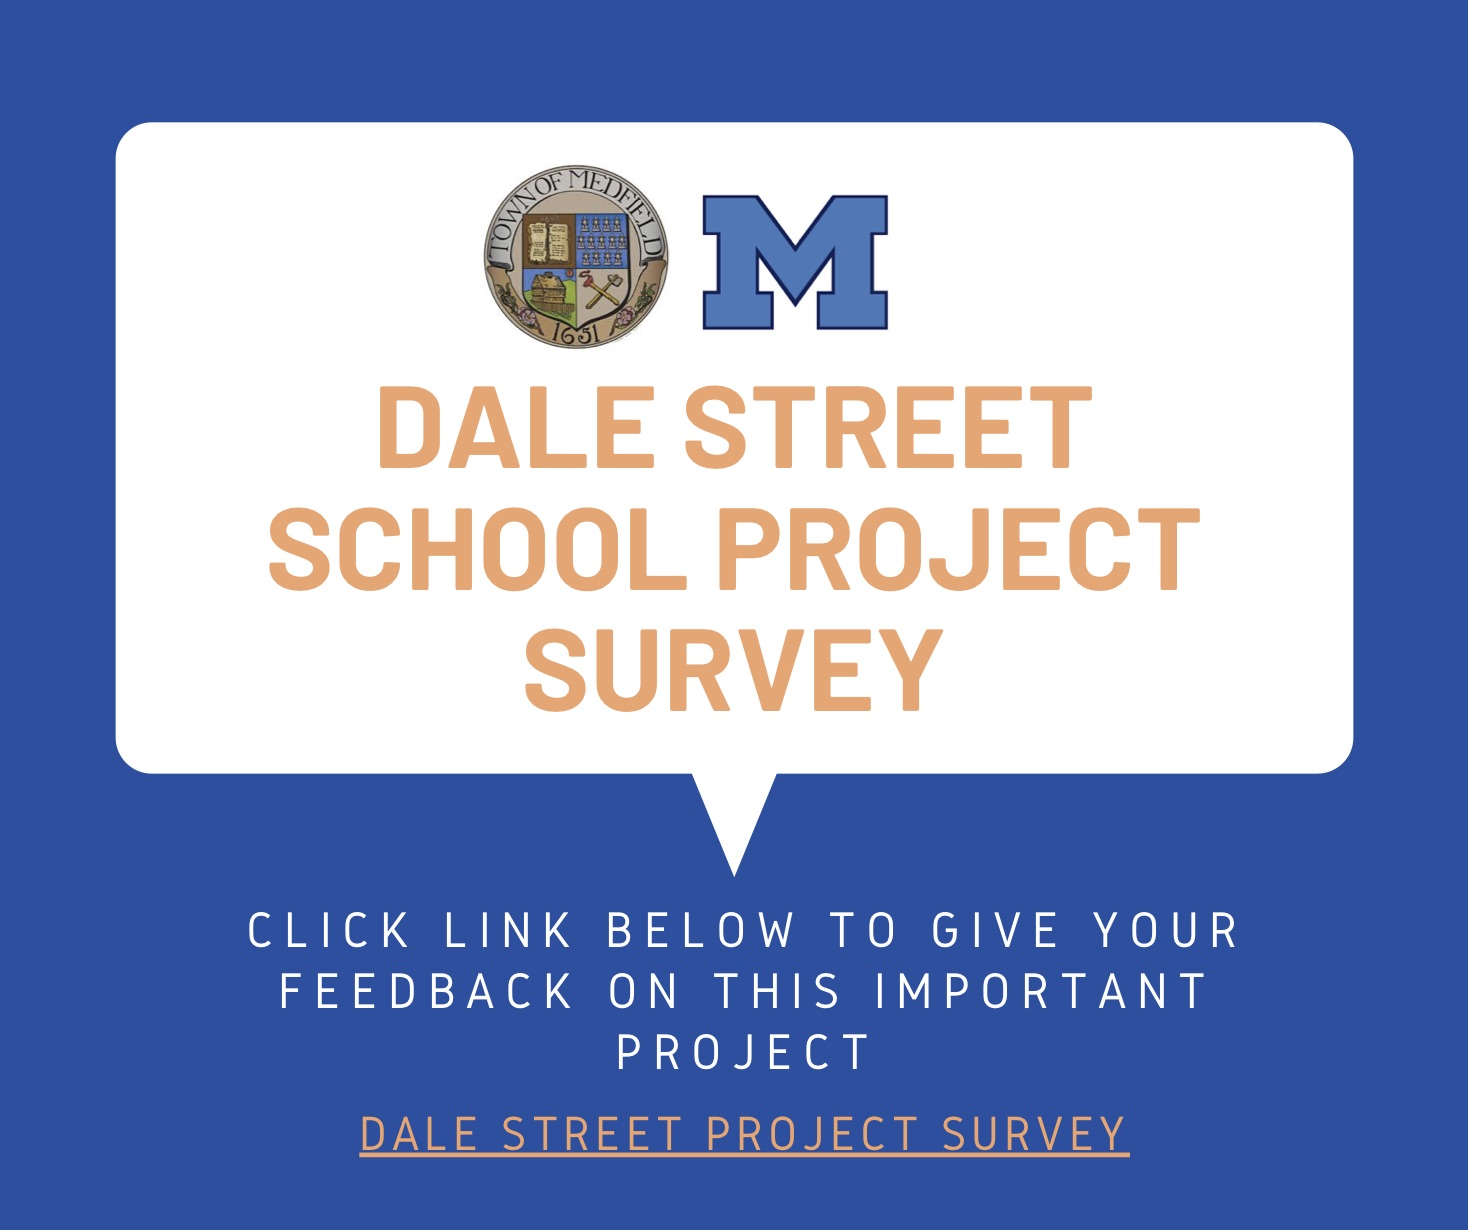 Take Dale Street School Project Survey Opens in new window